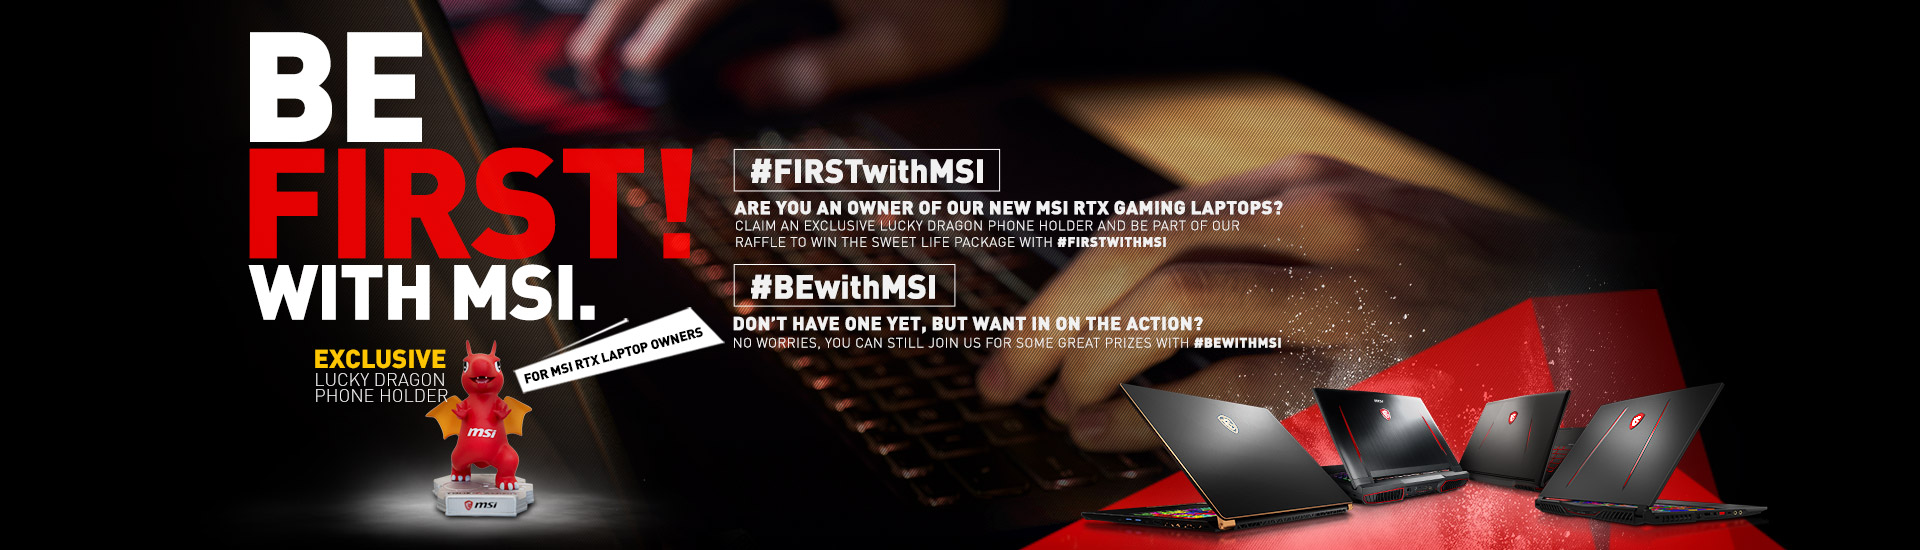 BE THE FIRST! WITH MSI